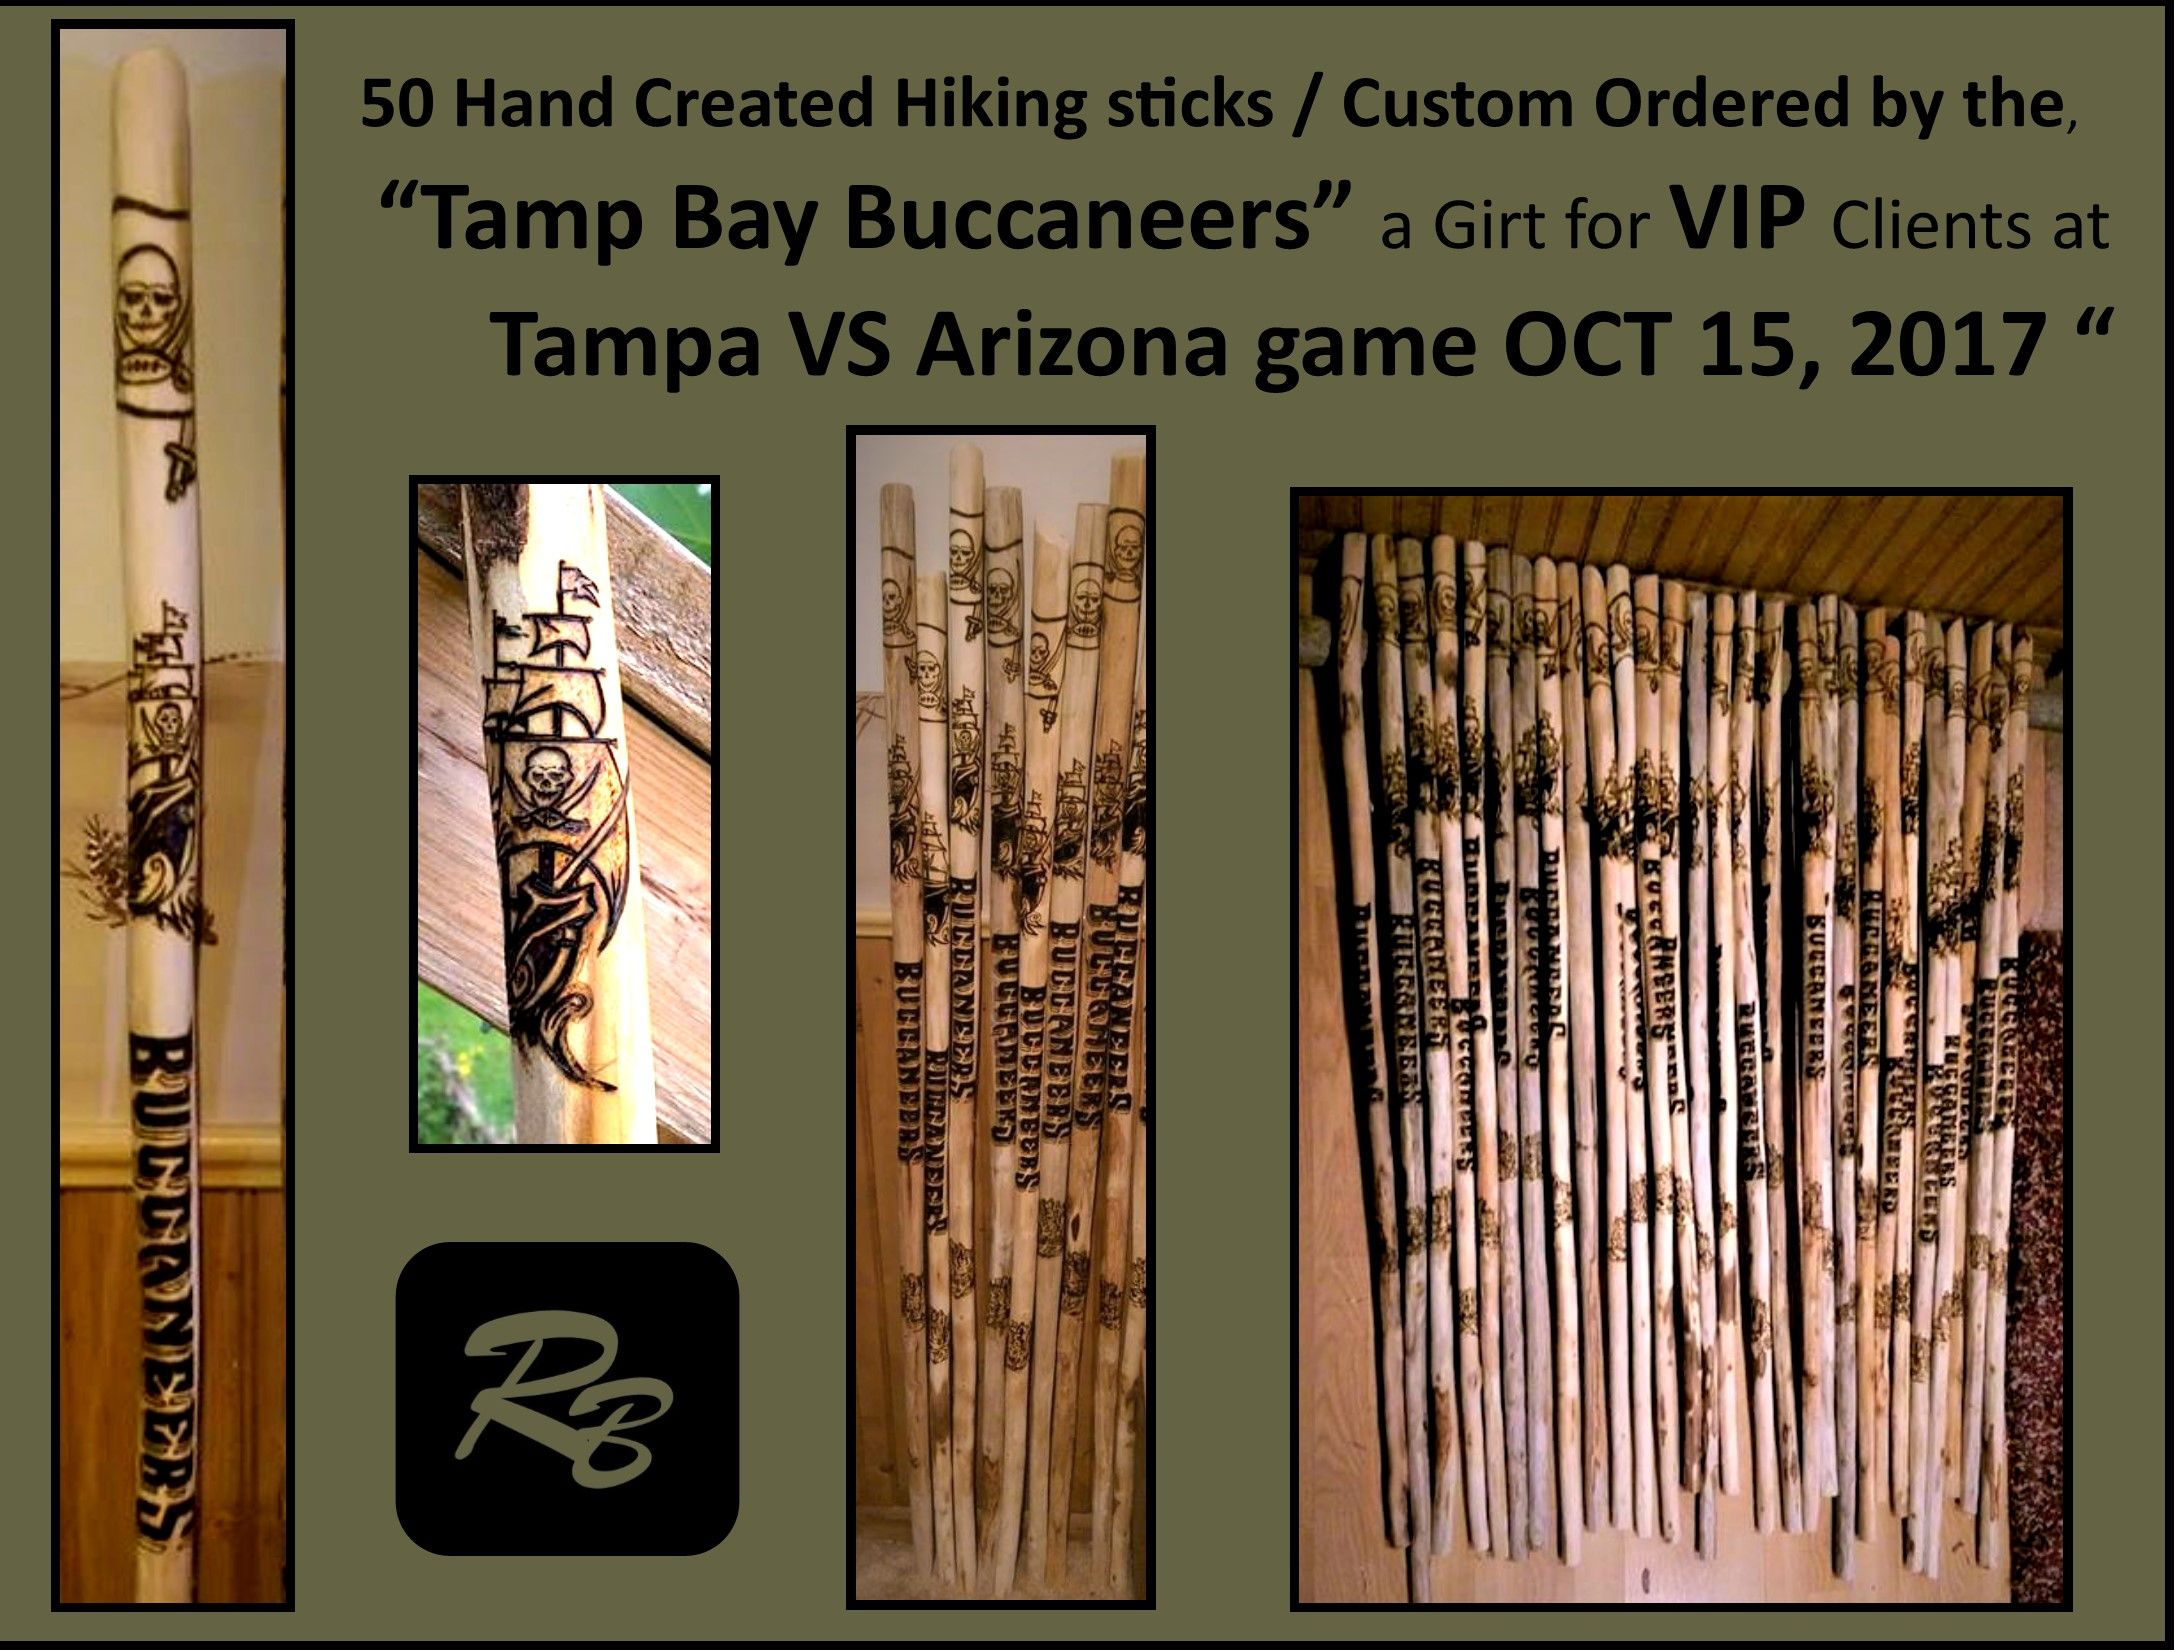 Buy a hand made hiking stickswalking stickhiking poleretirement custom made hiking stickswalking stickhiking poleretirement giftwood anniversary biocorpaavc Image collections